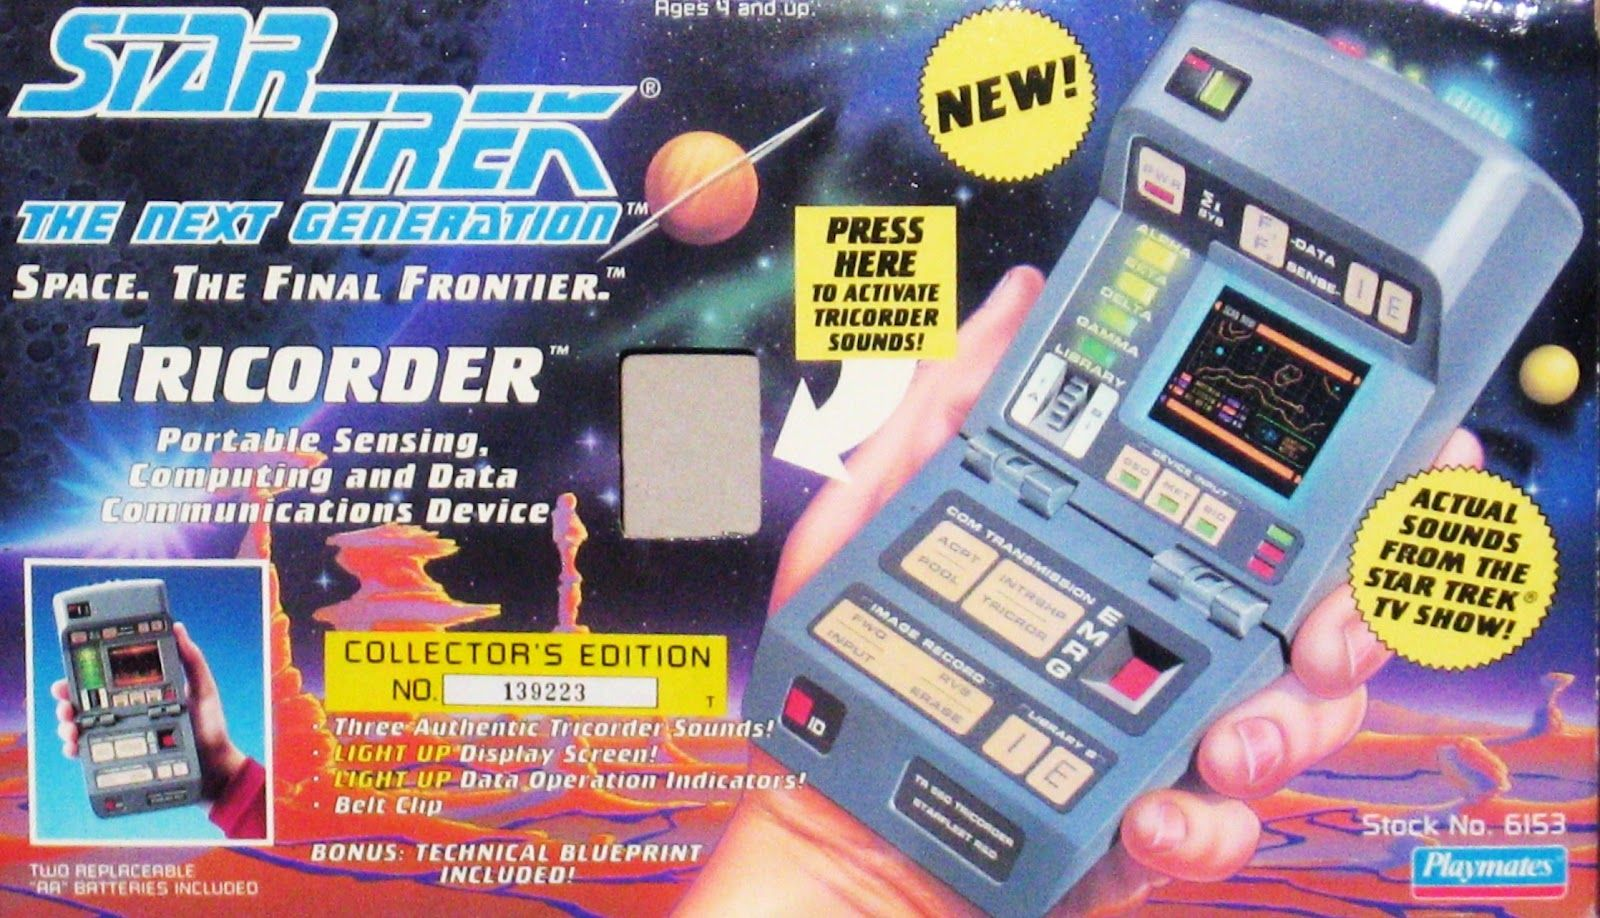 Star Trek: TNG Tricorder toy - This is probably #1 on my list of toys I want to reclaim (probably on eBay).  Really miss this one.  :(